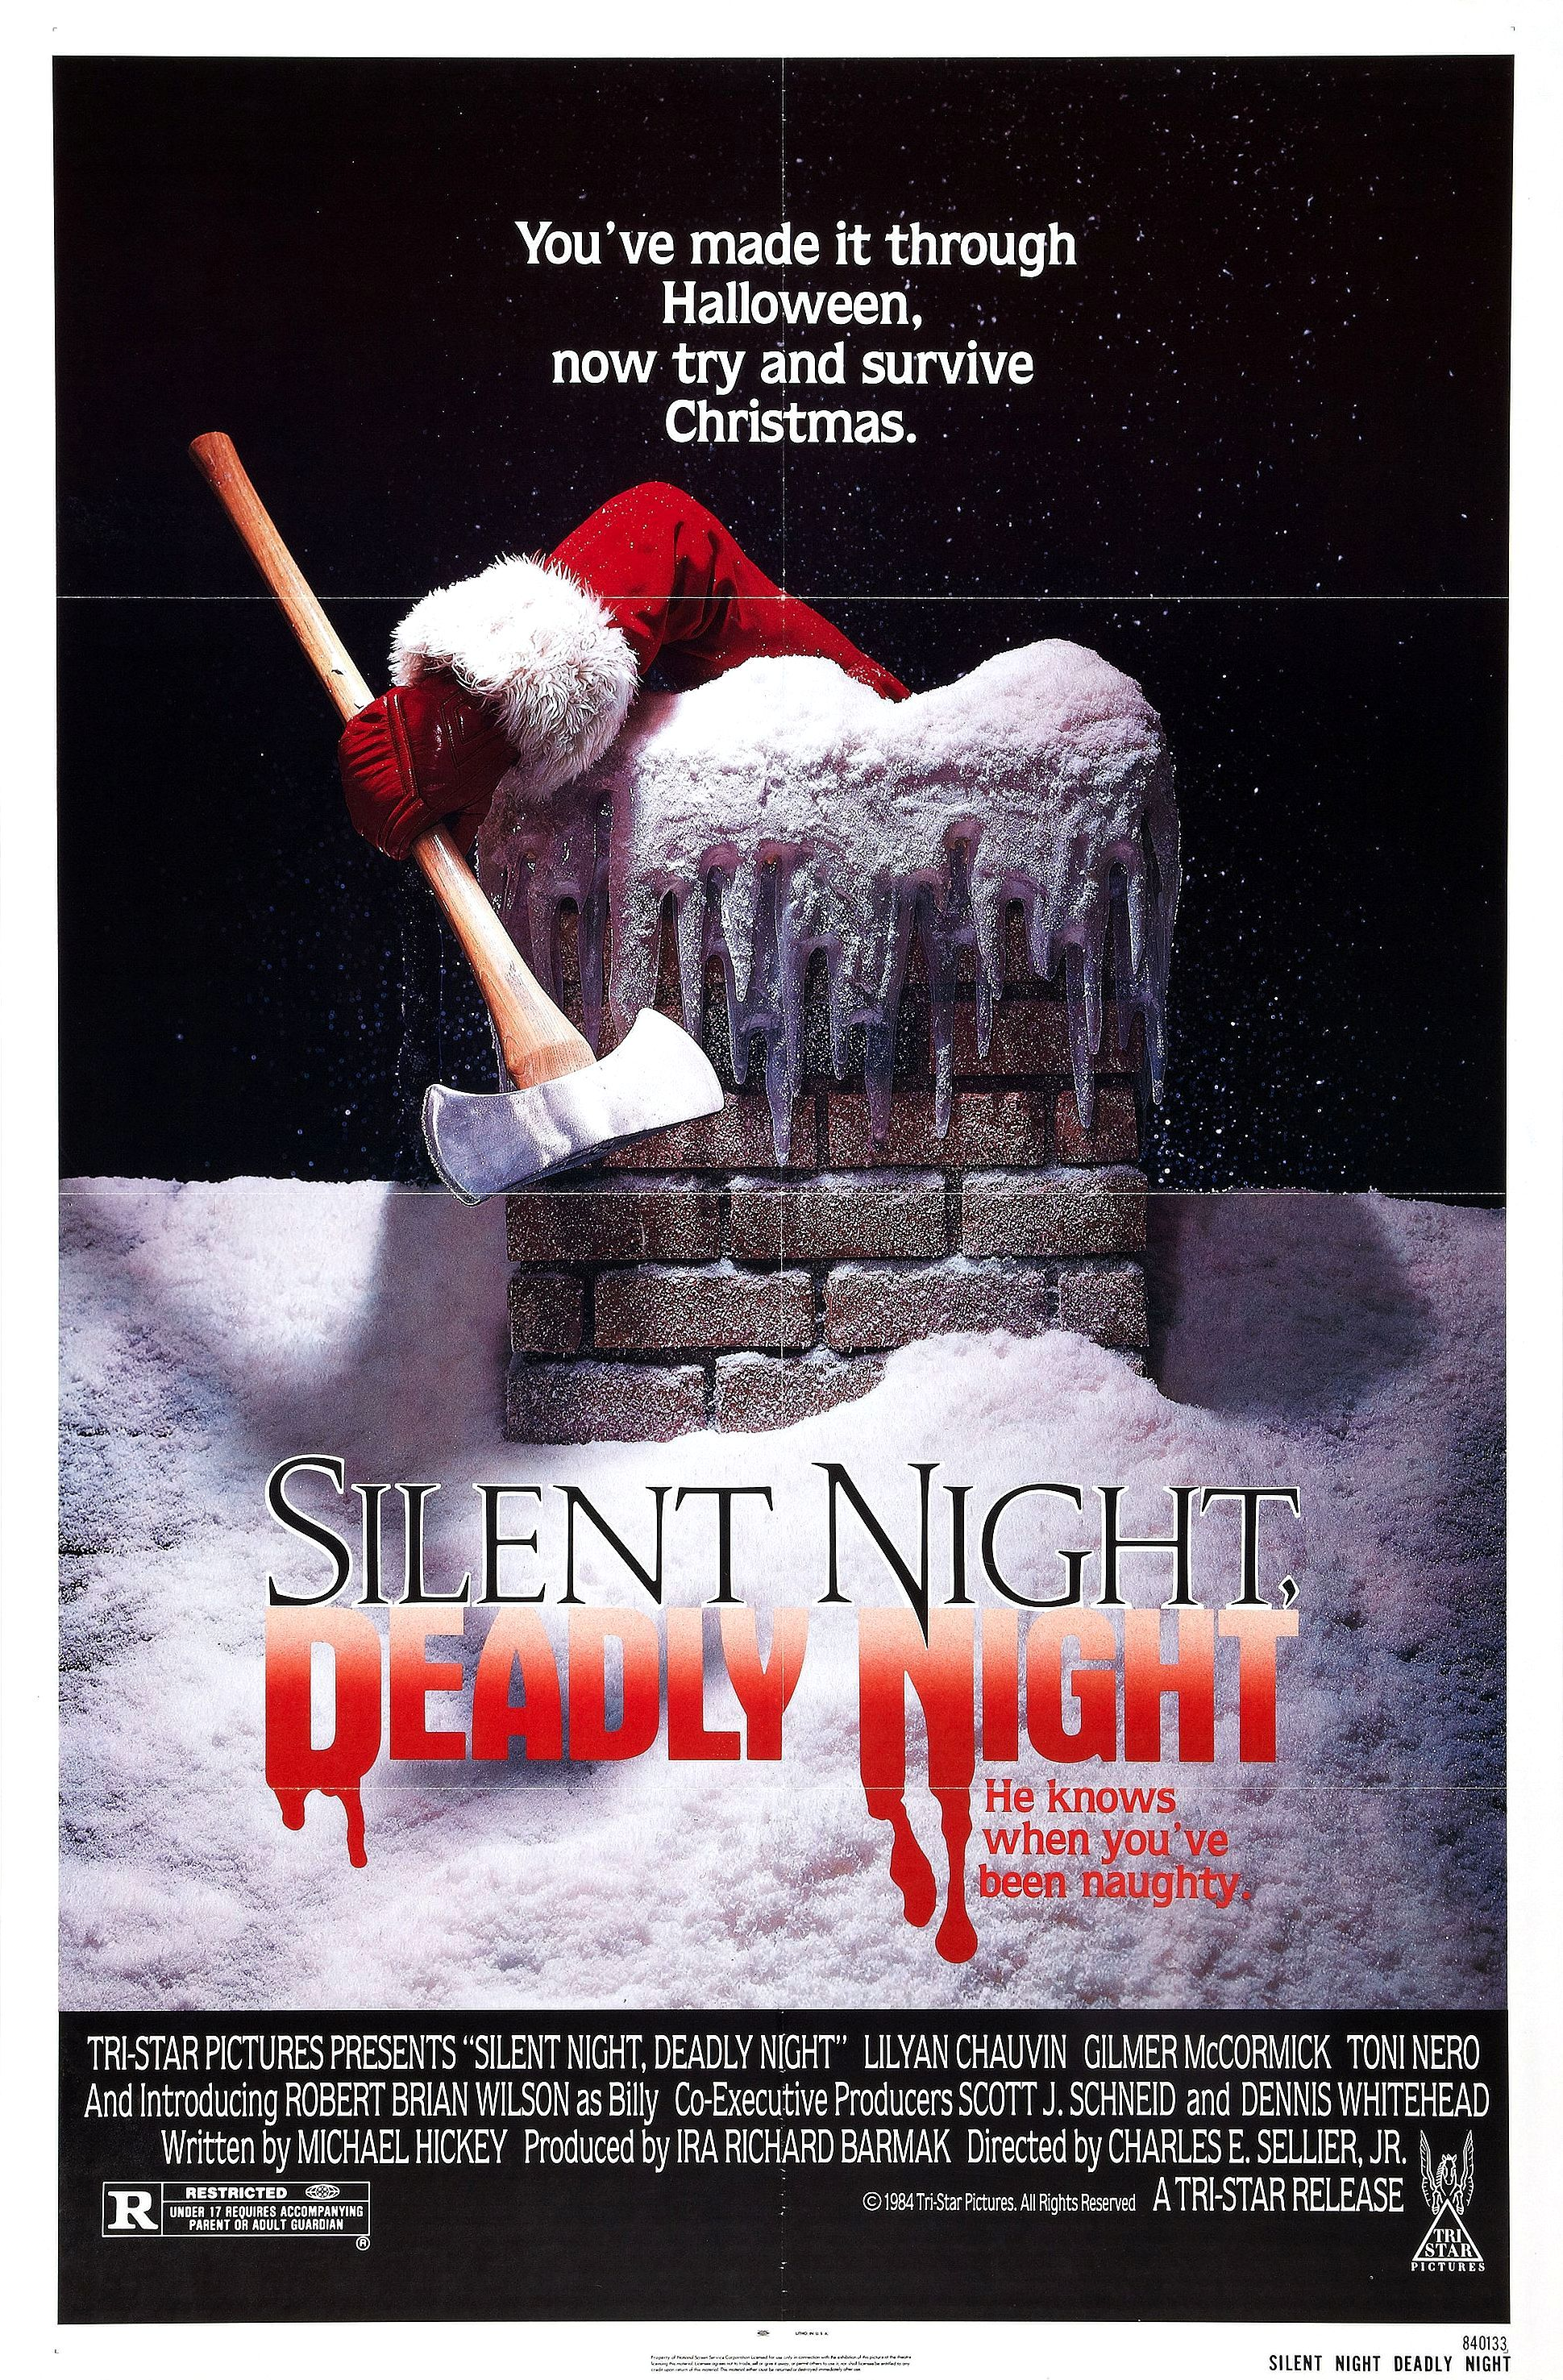 15. Silent Night, Deadly Night (1984) - A shinning holiday slasher that focuses on the story of our killer and not his victims. A dark origin story of a tortured boy that turns to a delightfully fun and inventive killer Santa. It's so good it almost makes us sad we can only watch it every Christmas.